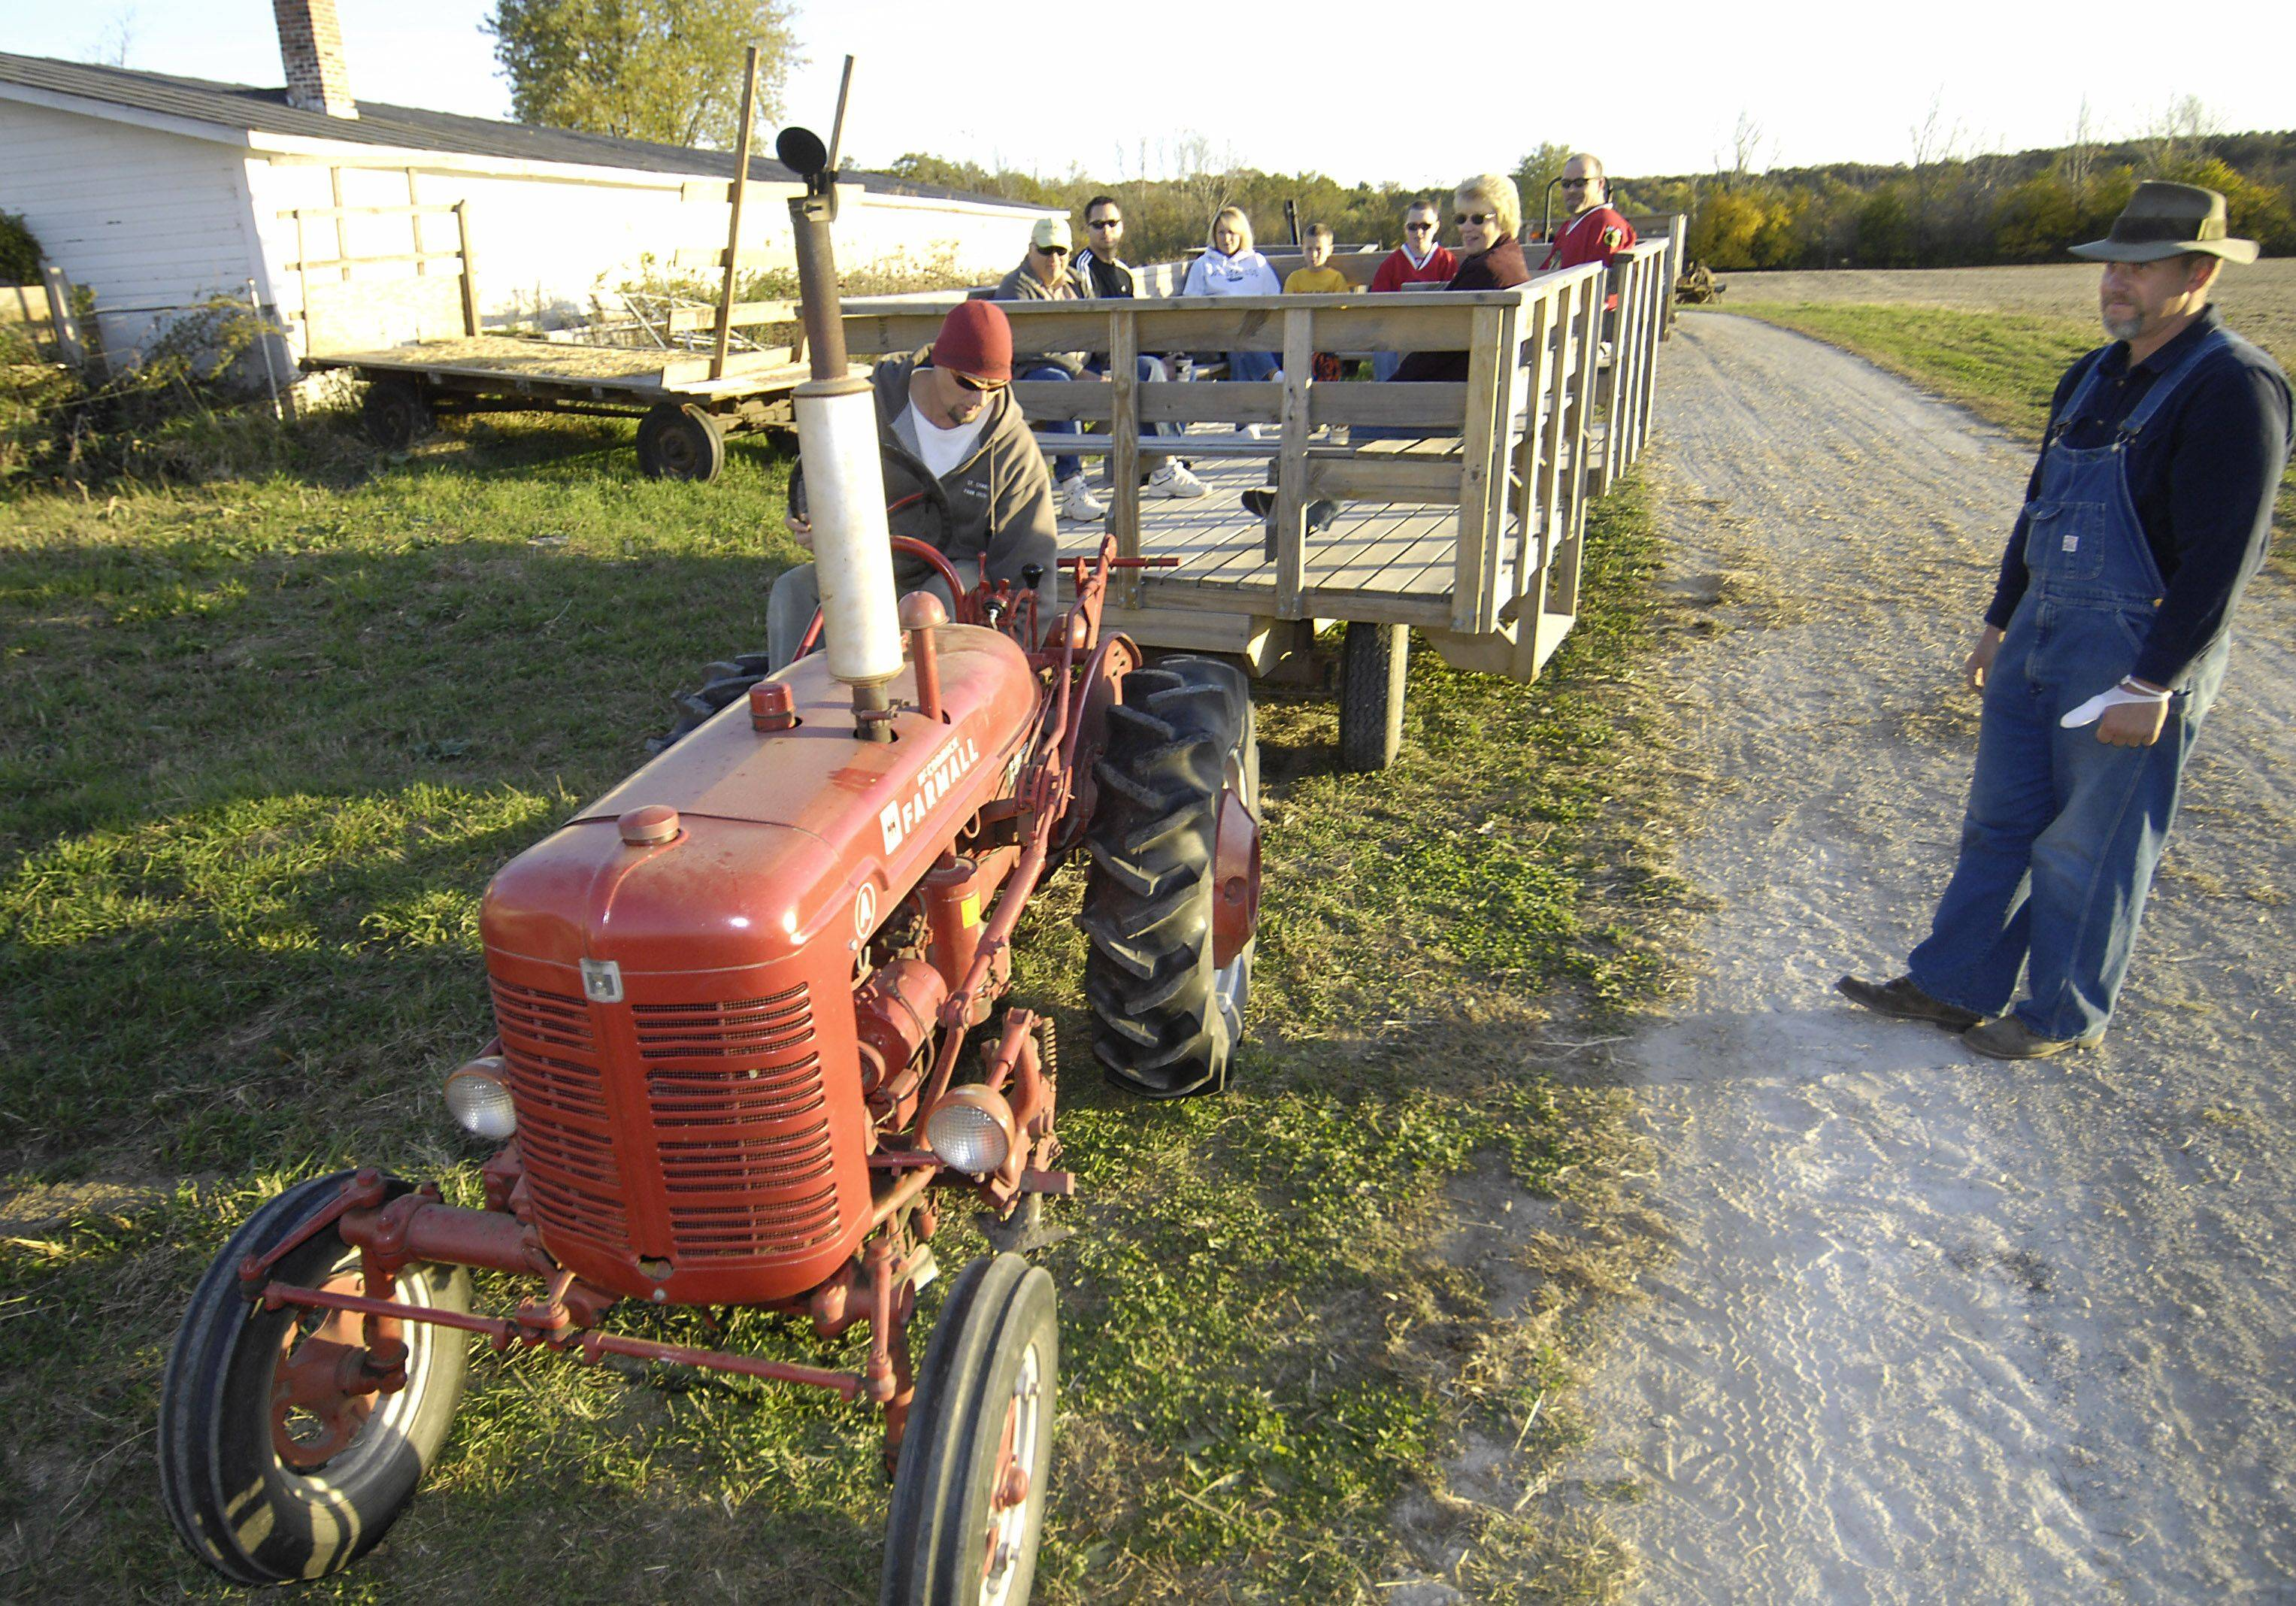 Paul Anderson starts a 1952A Farmall tractor Sunday evening for a hayride at Primrose Farm in St. Charles. He is a park district employee. At right is farm manager Kirk Bunke. The historic 150-year-old farm also provided hayrides with new tractors.